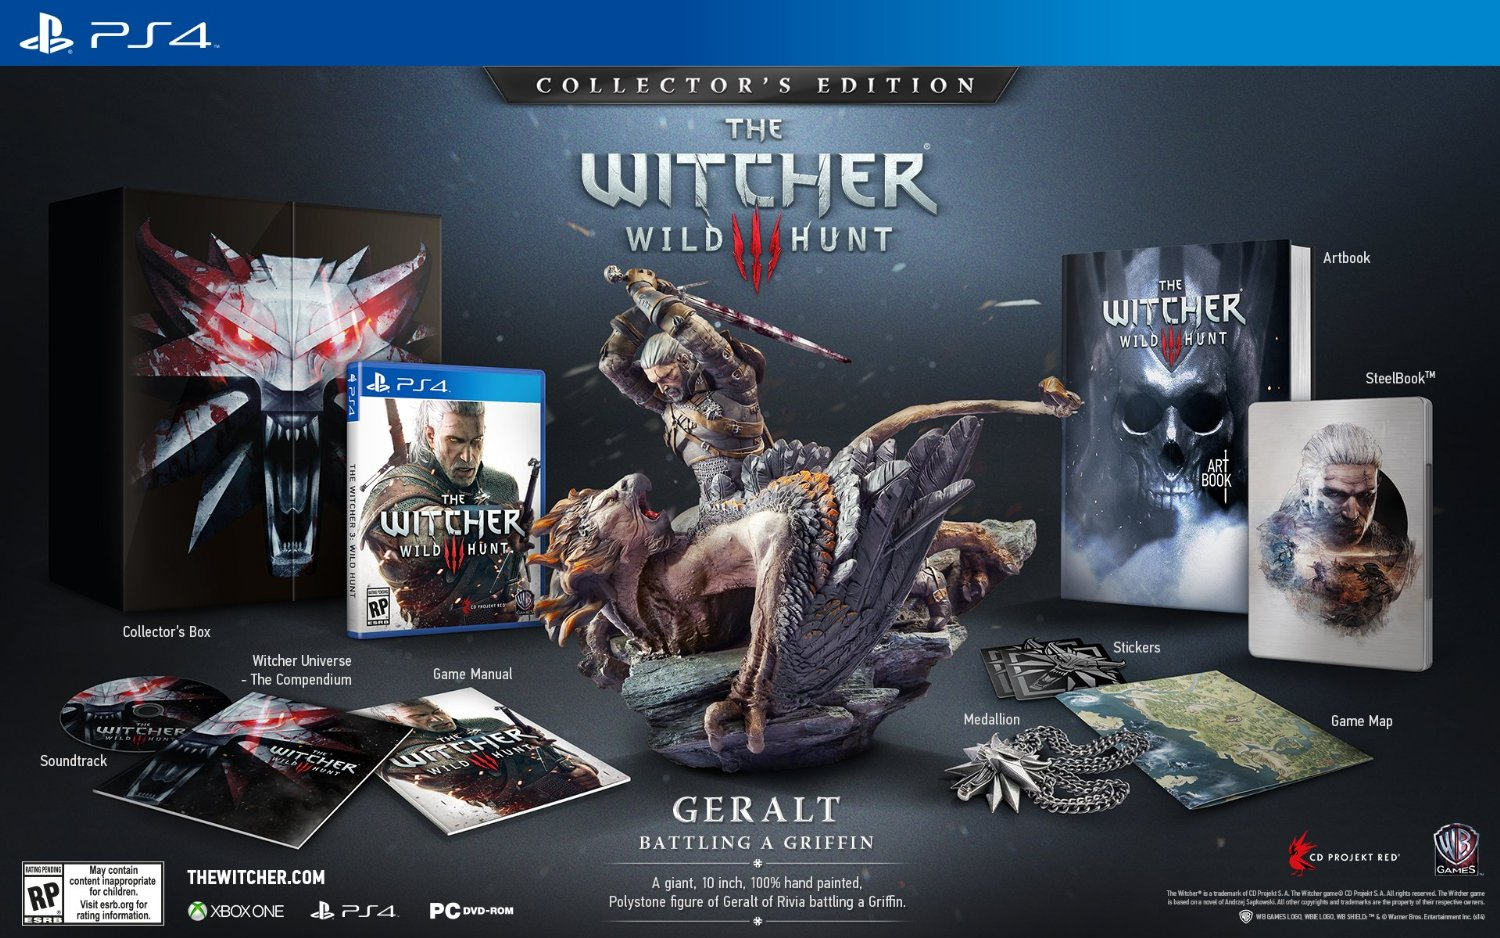 Das steckt in der Collectors Edition von The Witcher 3 Wild Hunt